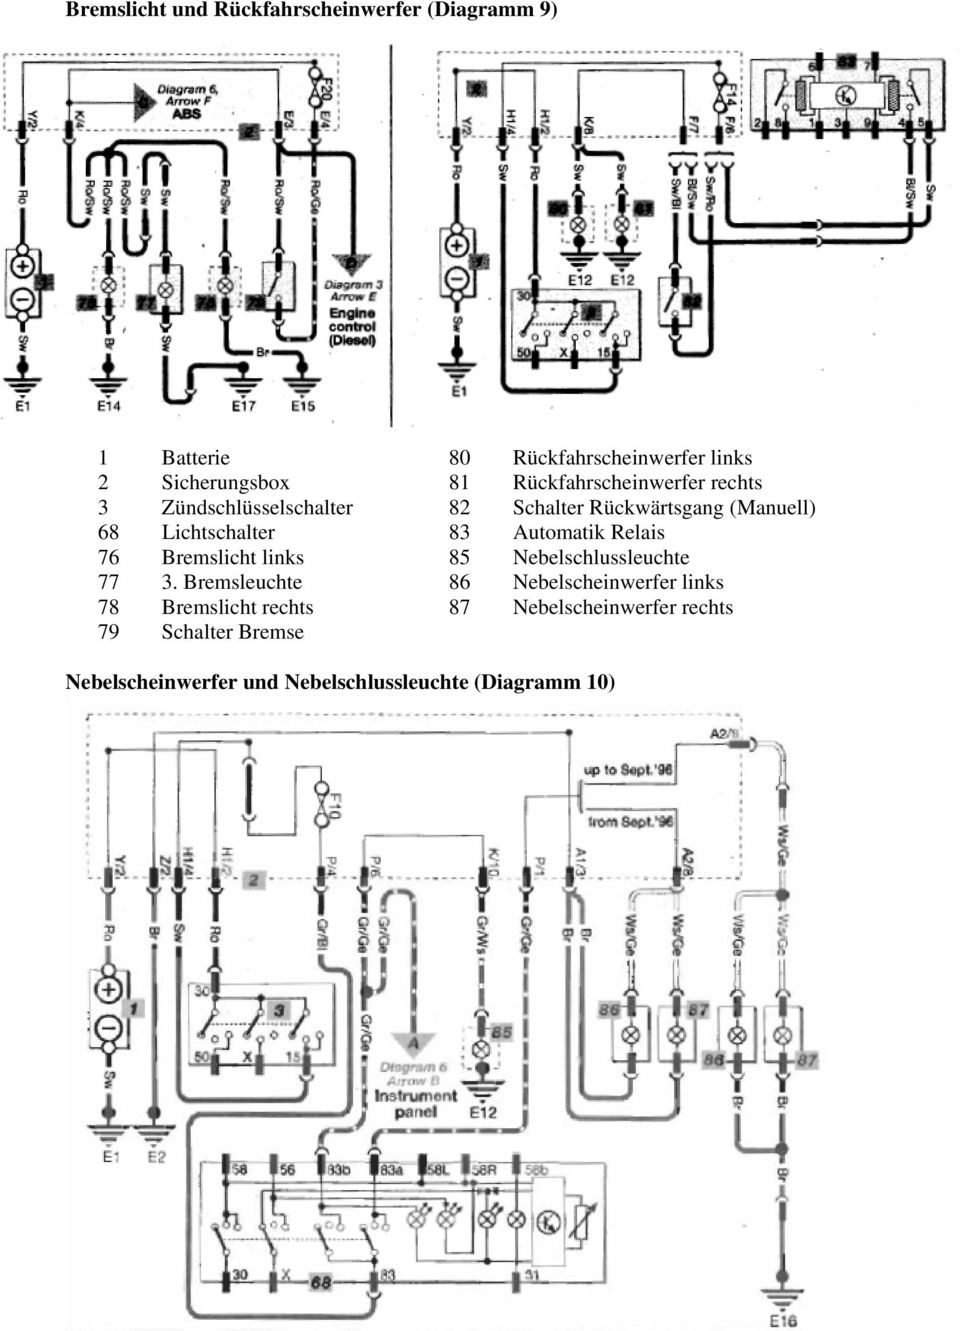 medium resolution of 91 porsche 911 wiring diagram electrical schematic porsche 911 engine diagram porsche 911 engine diagram